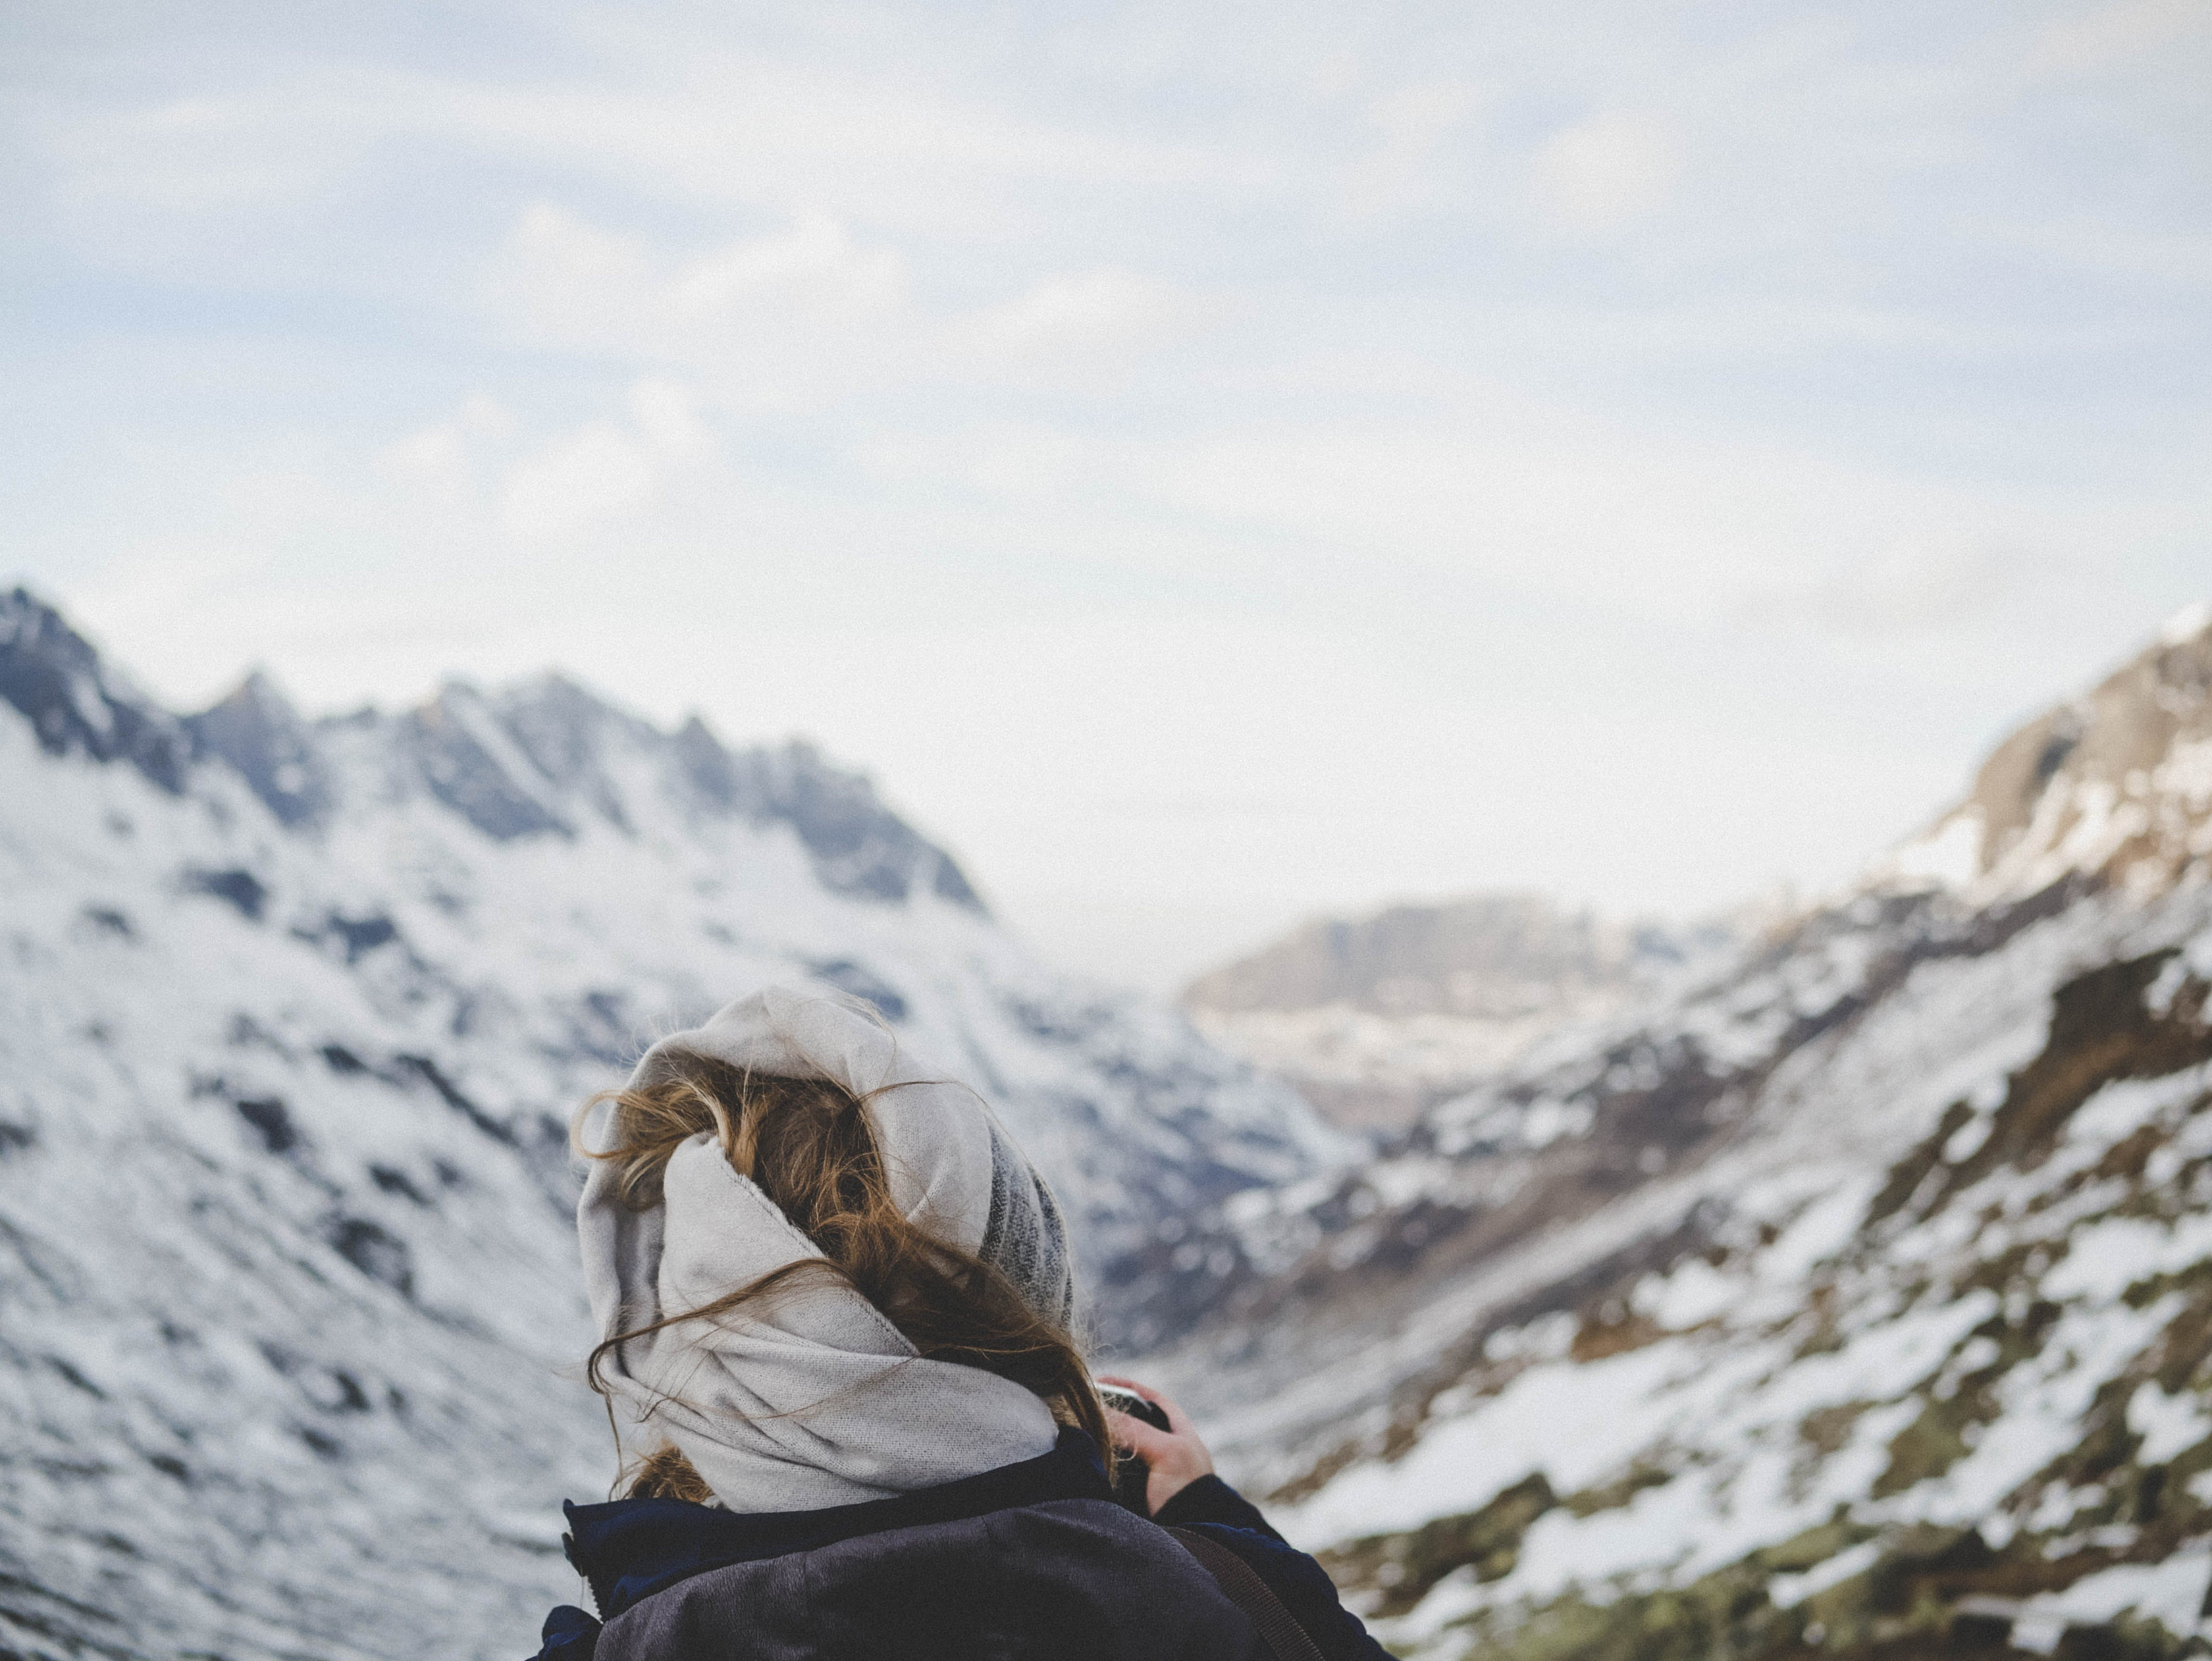 Person Wearing Black Jacket in Front of Mountain Filled With Snow